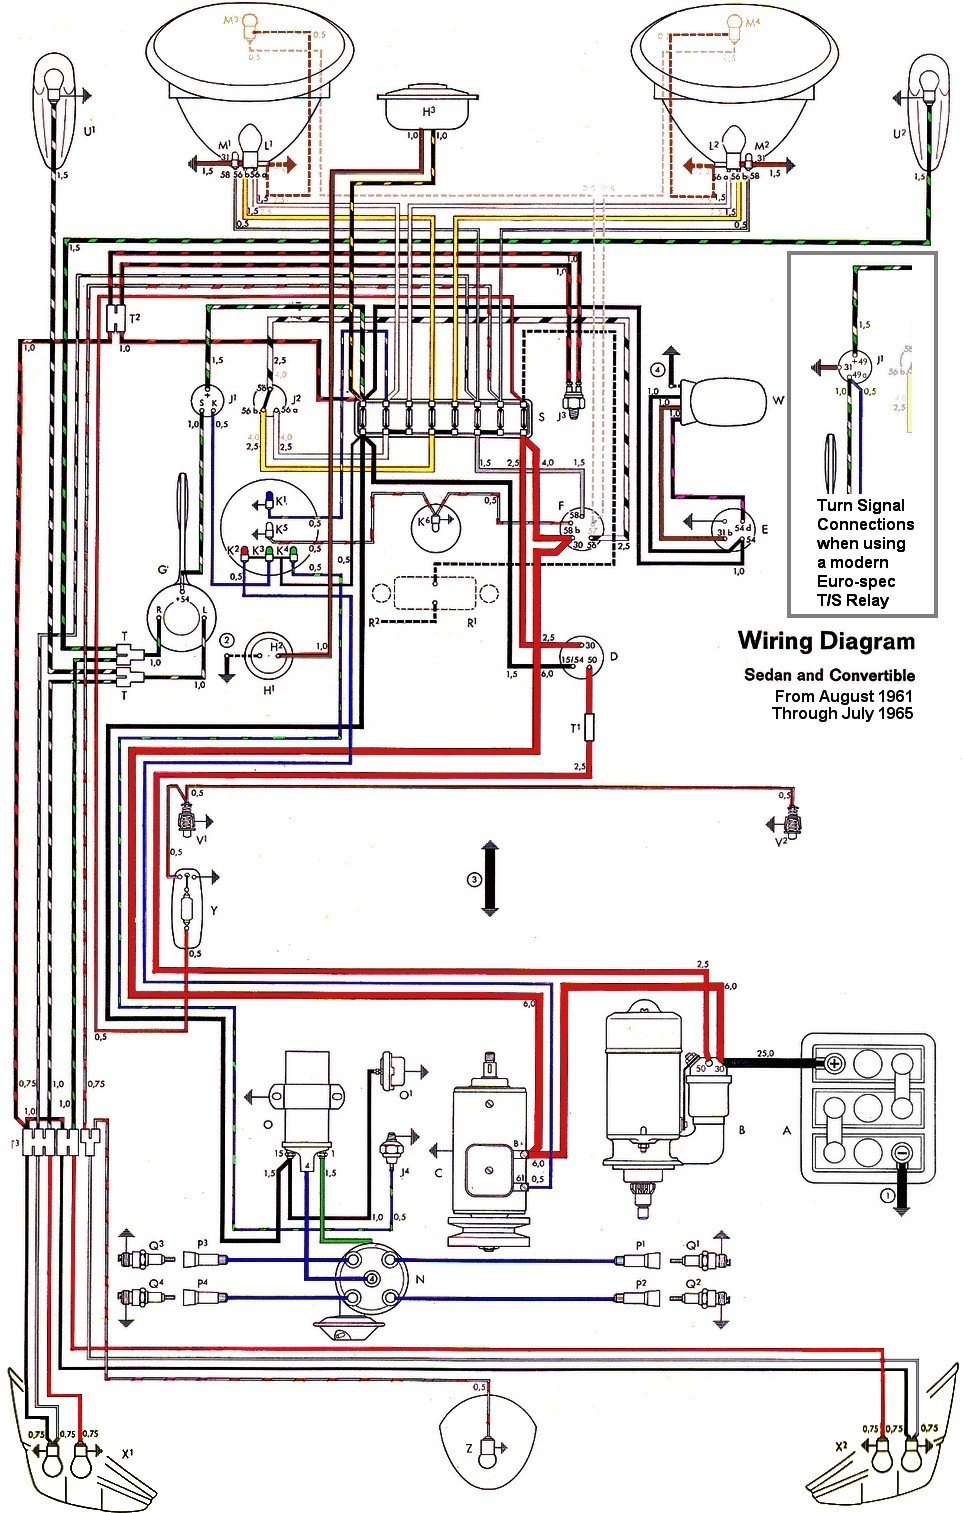 bug_62 65withinset vw bug turn signal wiring diagram vw beetle flasher relay wiring vw bug turn signal wiring diagram at eliteediting.co